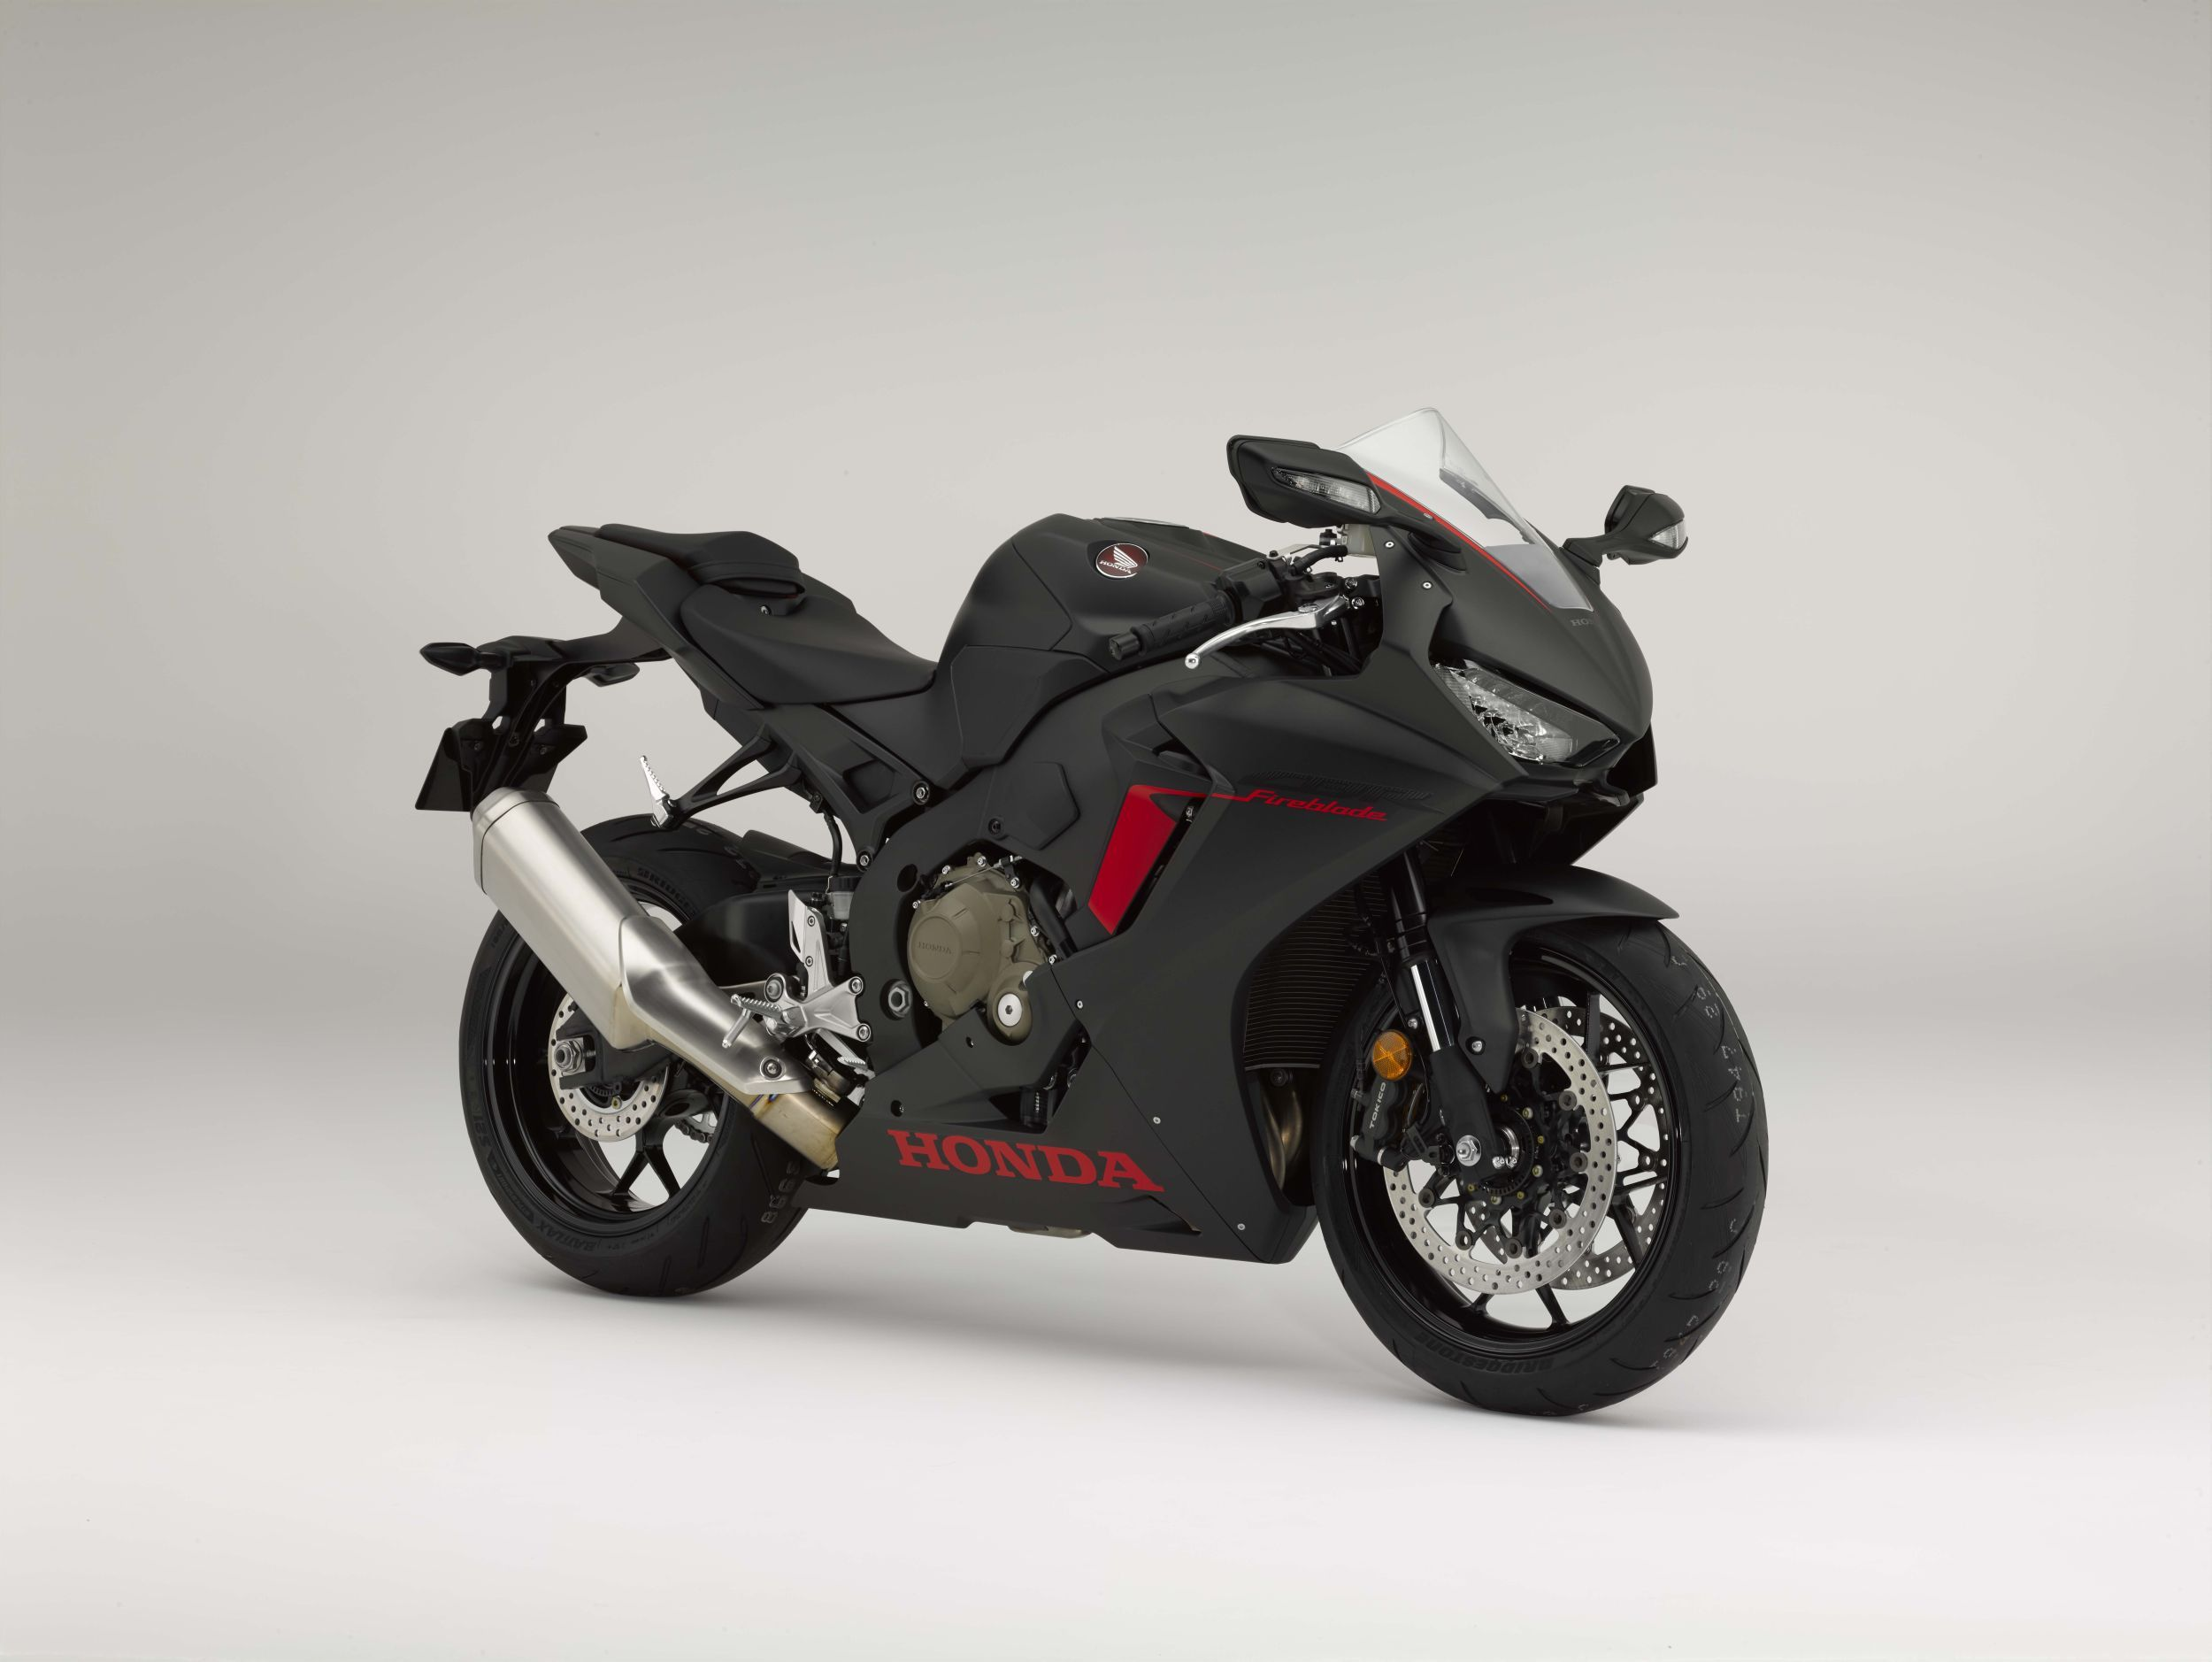 honda cbr 1000 rr fireblade test gebraucht kaufen technische daten. Black Bedroom Furniture Sets. Home Design Ideas